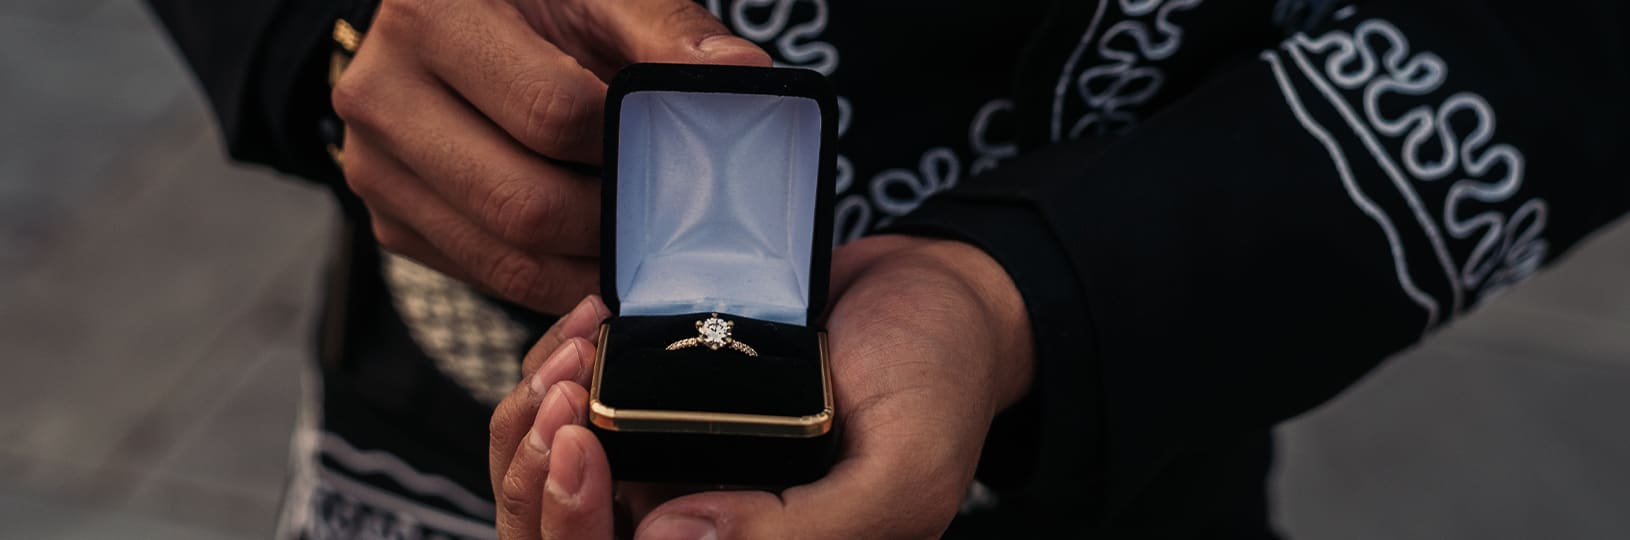 Proposal with a simulated diamond engagement ring